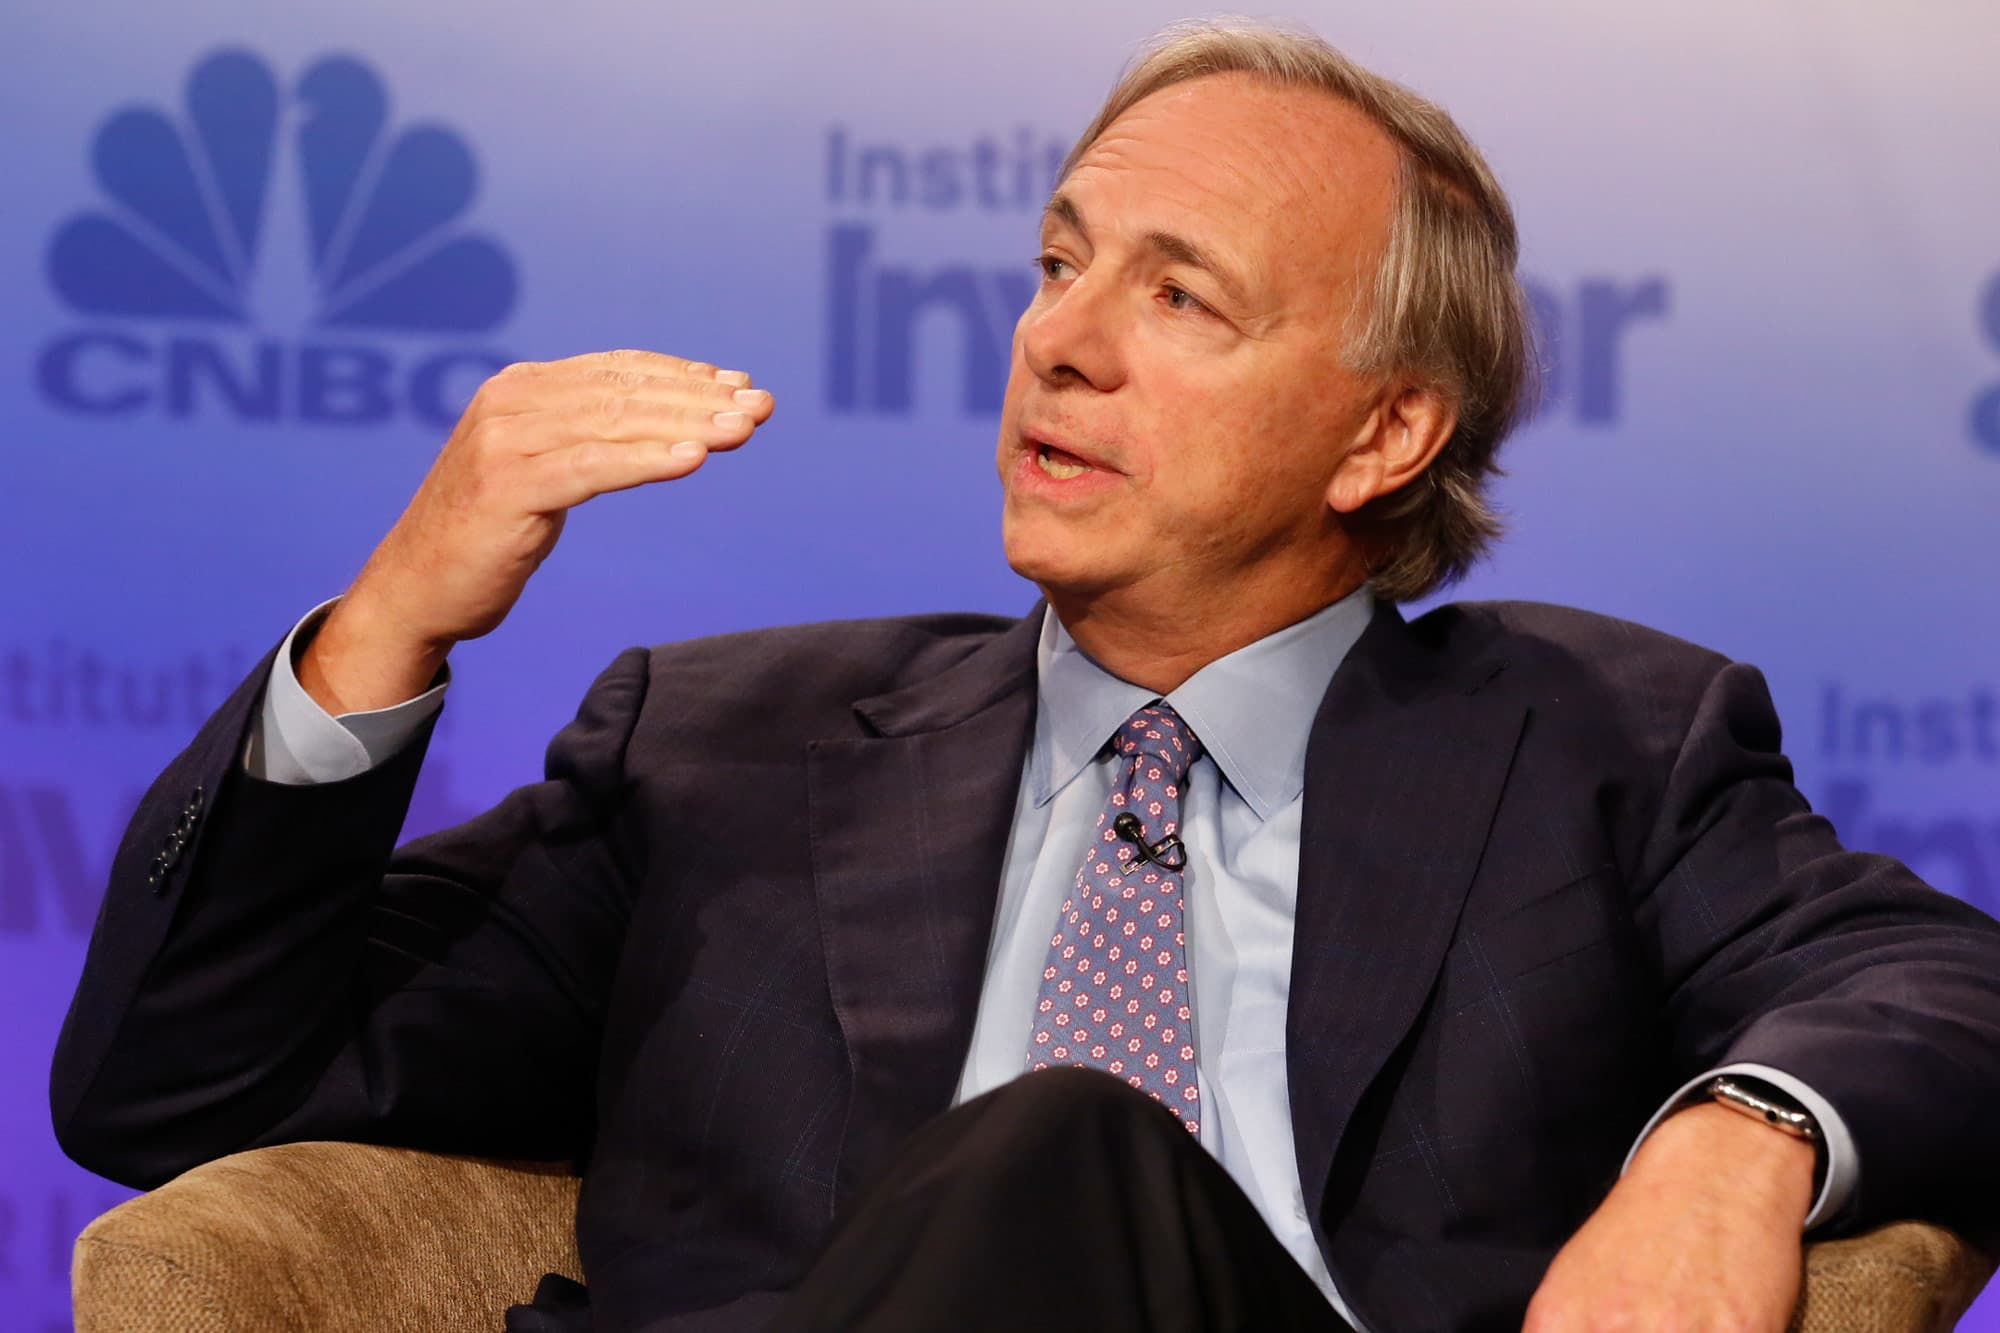 How America's capitalist system is 'broken,' according to billionaire financier Ray Dalio